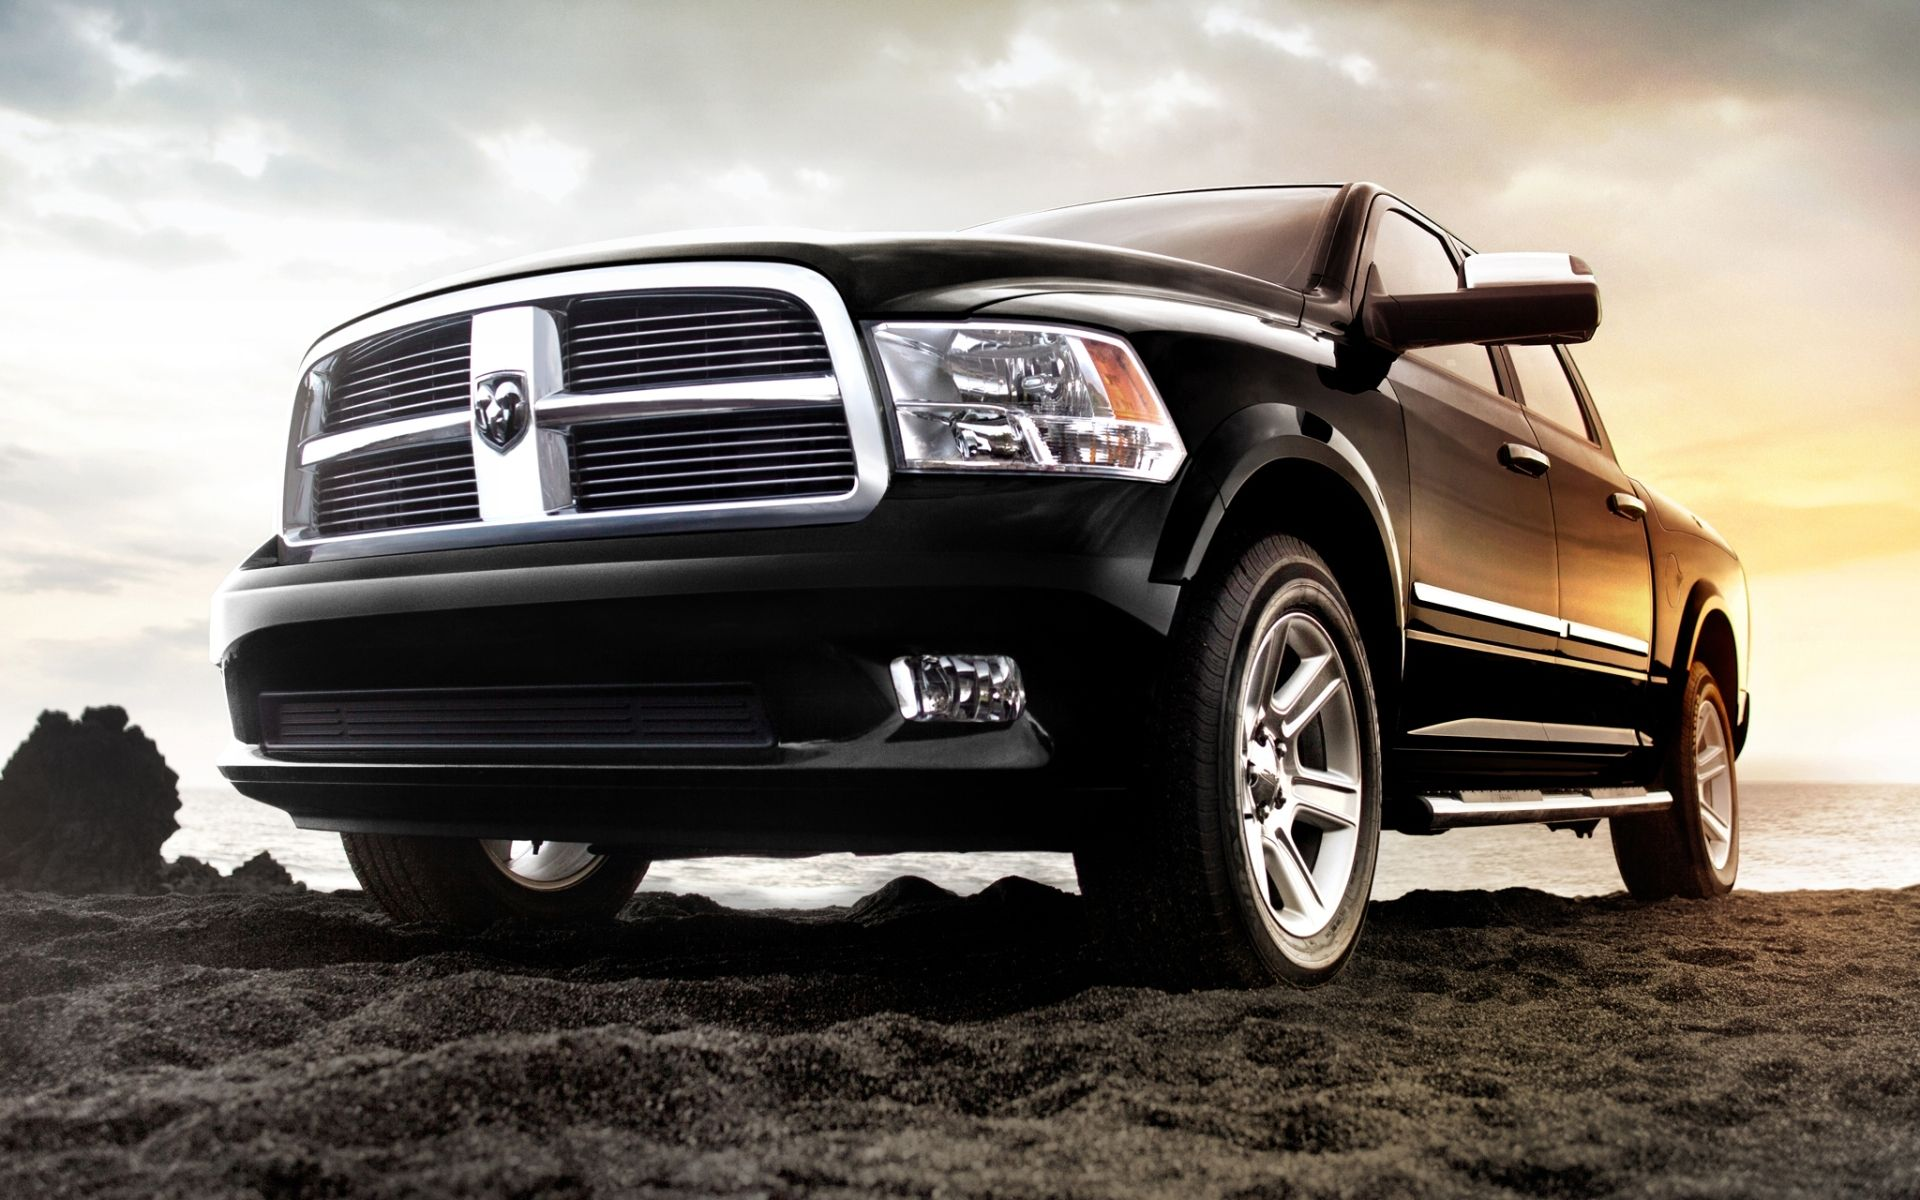 Pin by World auto on my wallpaper collection Ram trucks